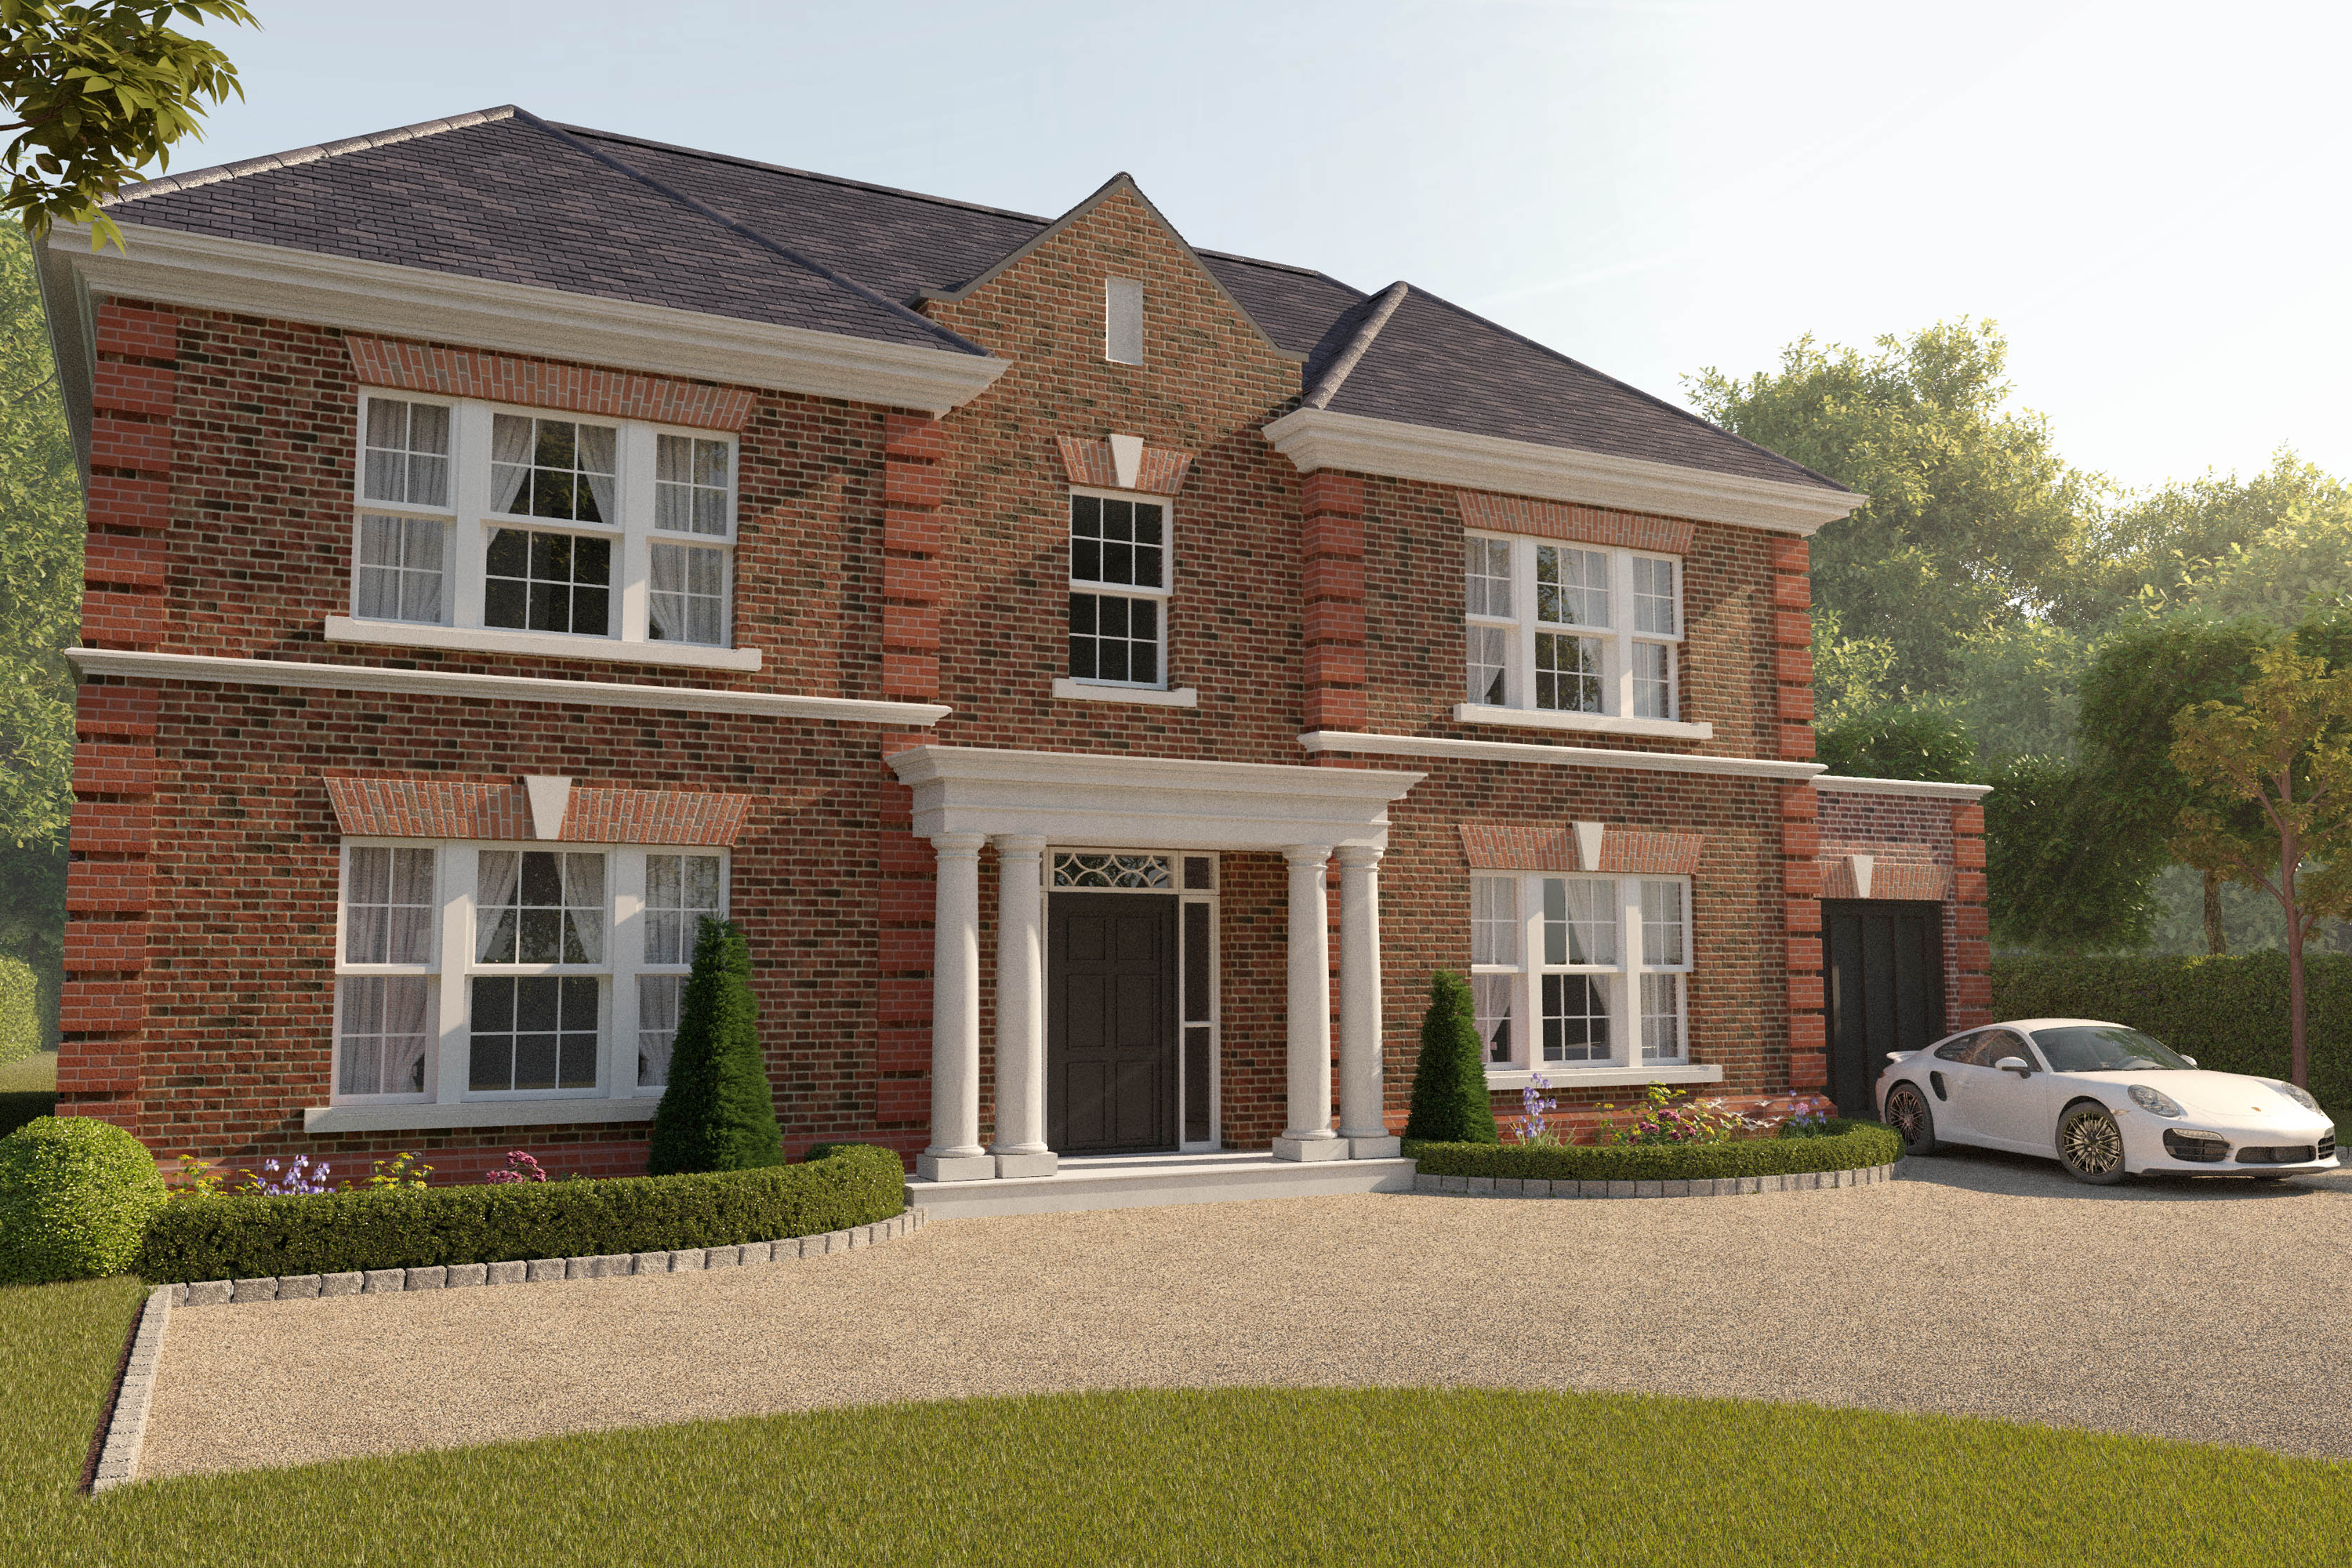 Sold: Alderney House, Oxshott, Surrey